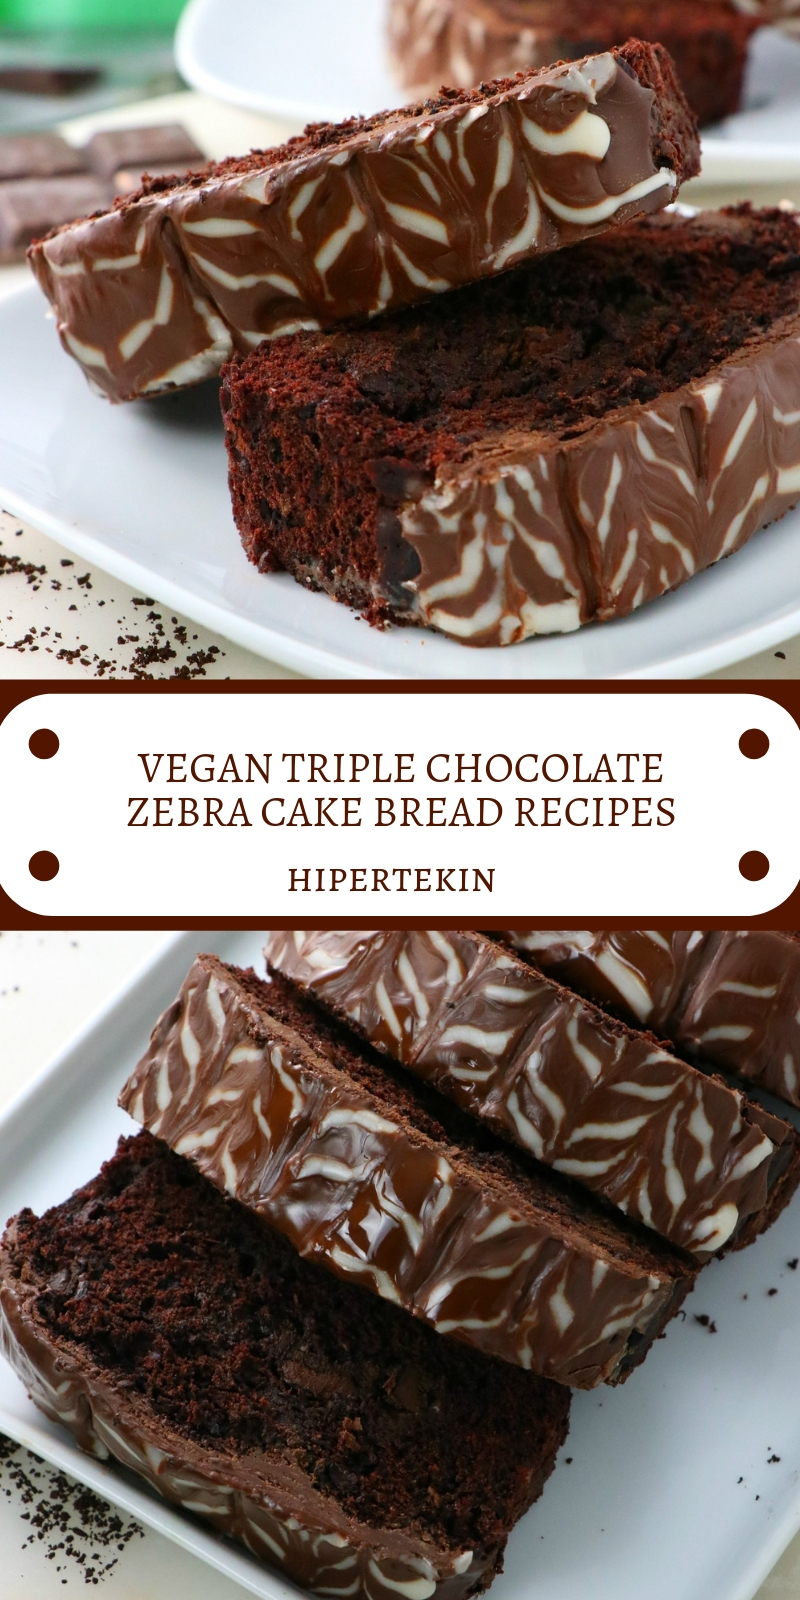 VEGAN TRIPLE CHOCOLATE ZEBRA CAKE BREAD RECIPES